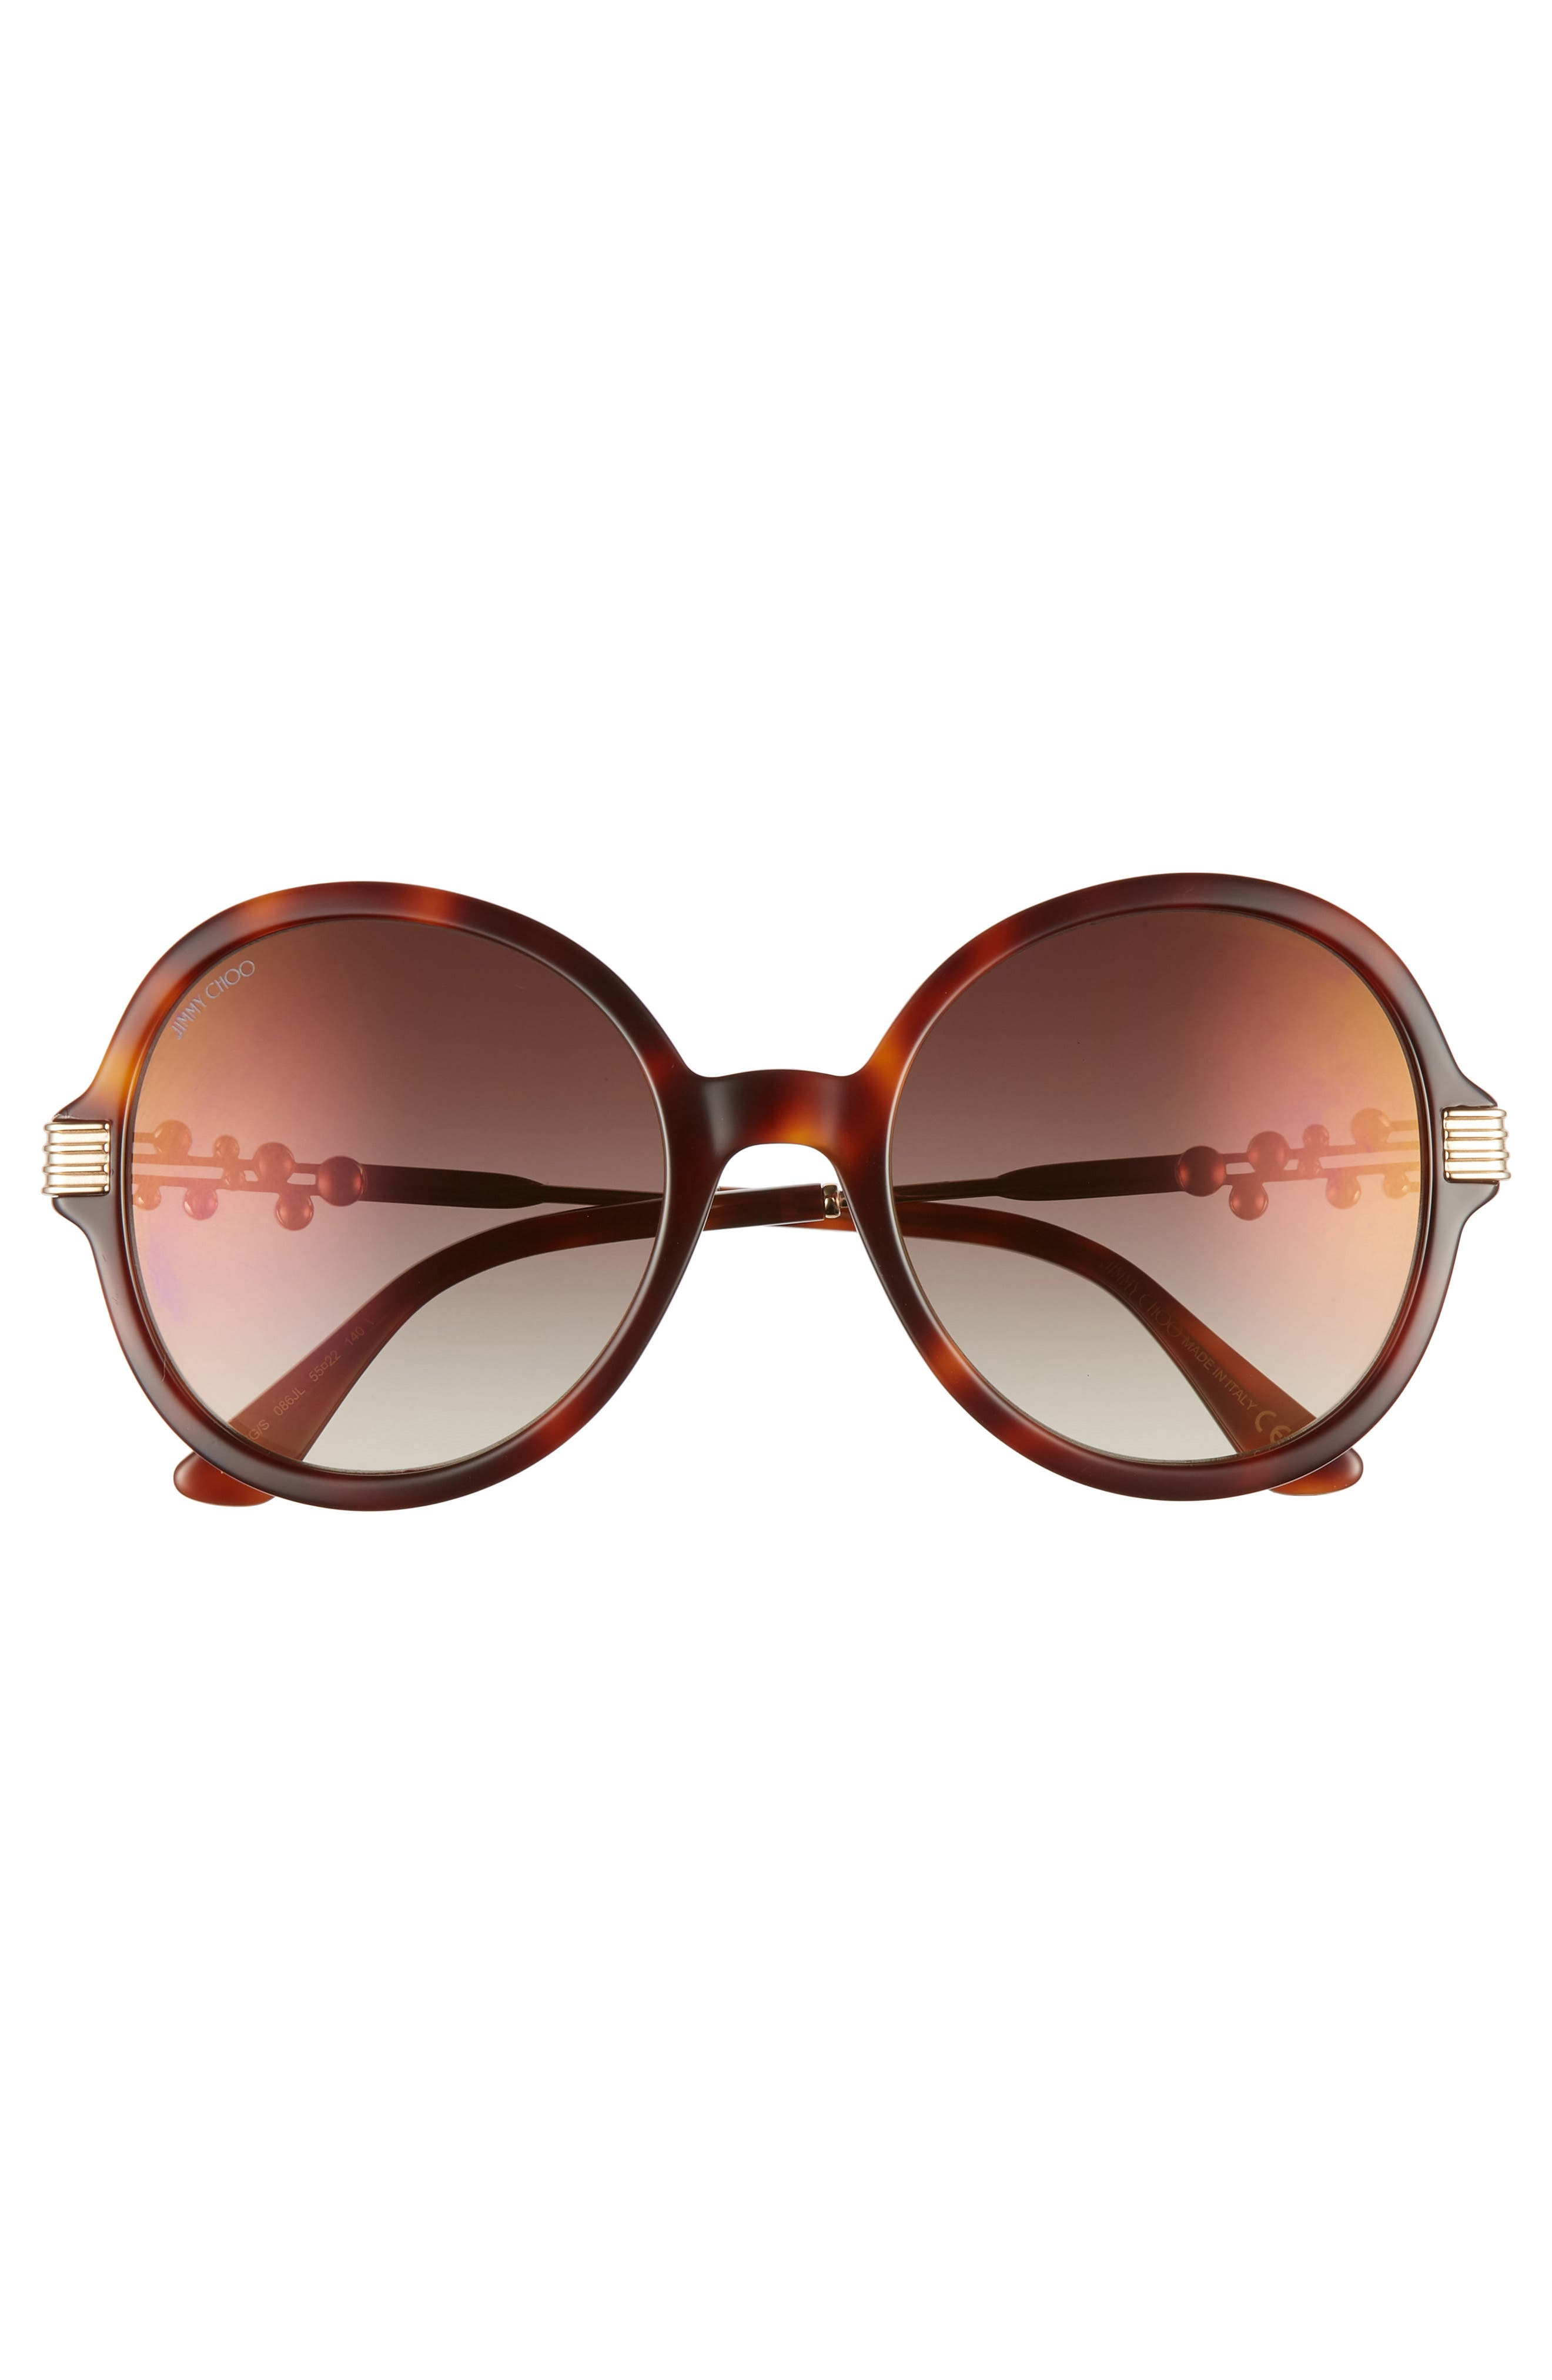 41927f79700 Jimmy Choo Sunglasses for Women